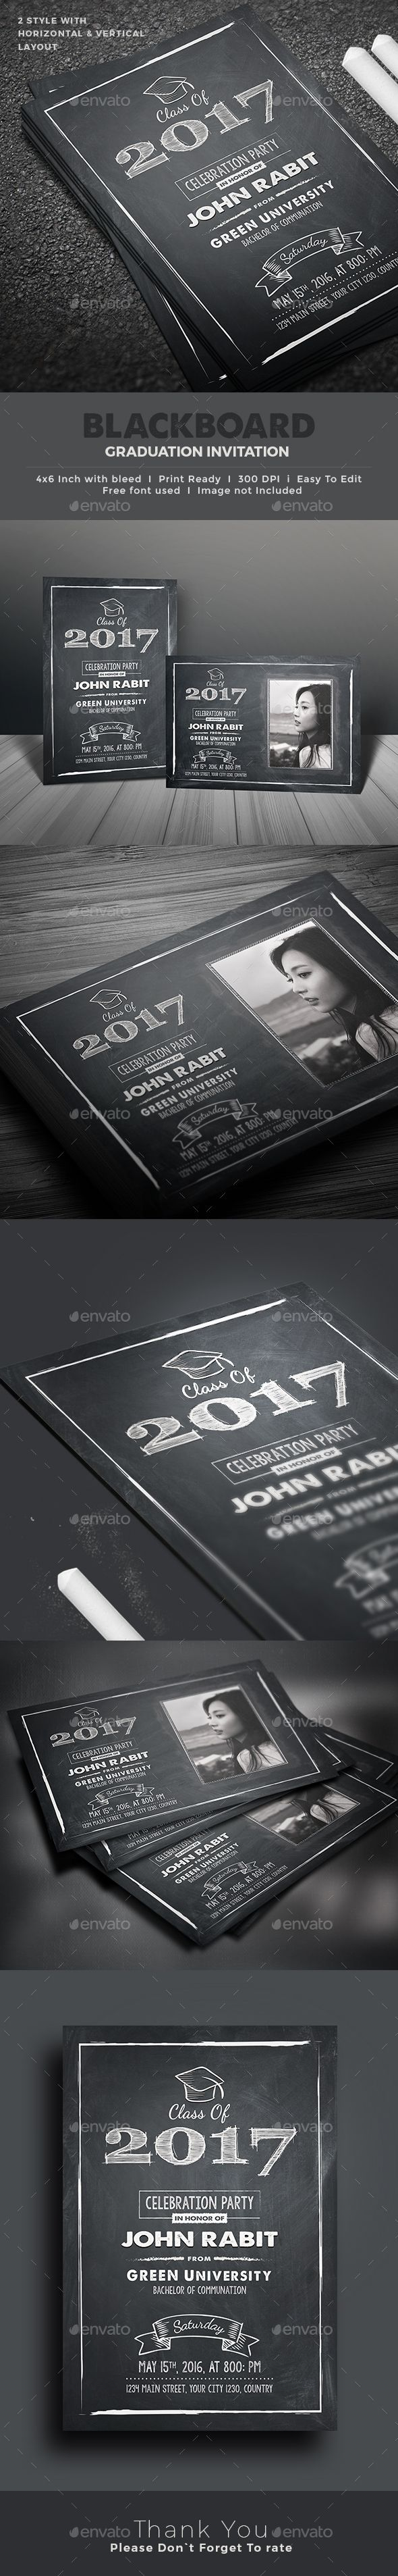 Best 25 graduation invitation templates ideas on pinterest graduation invitation stopboris Choice Image